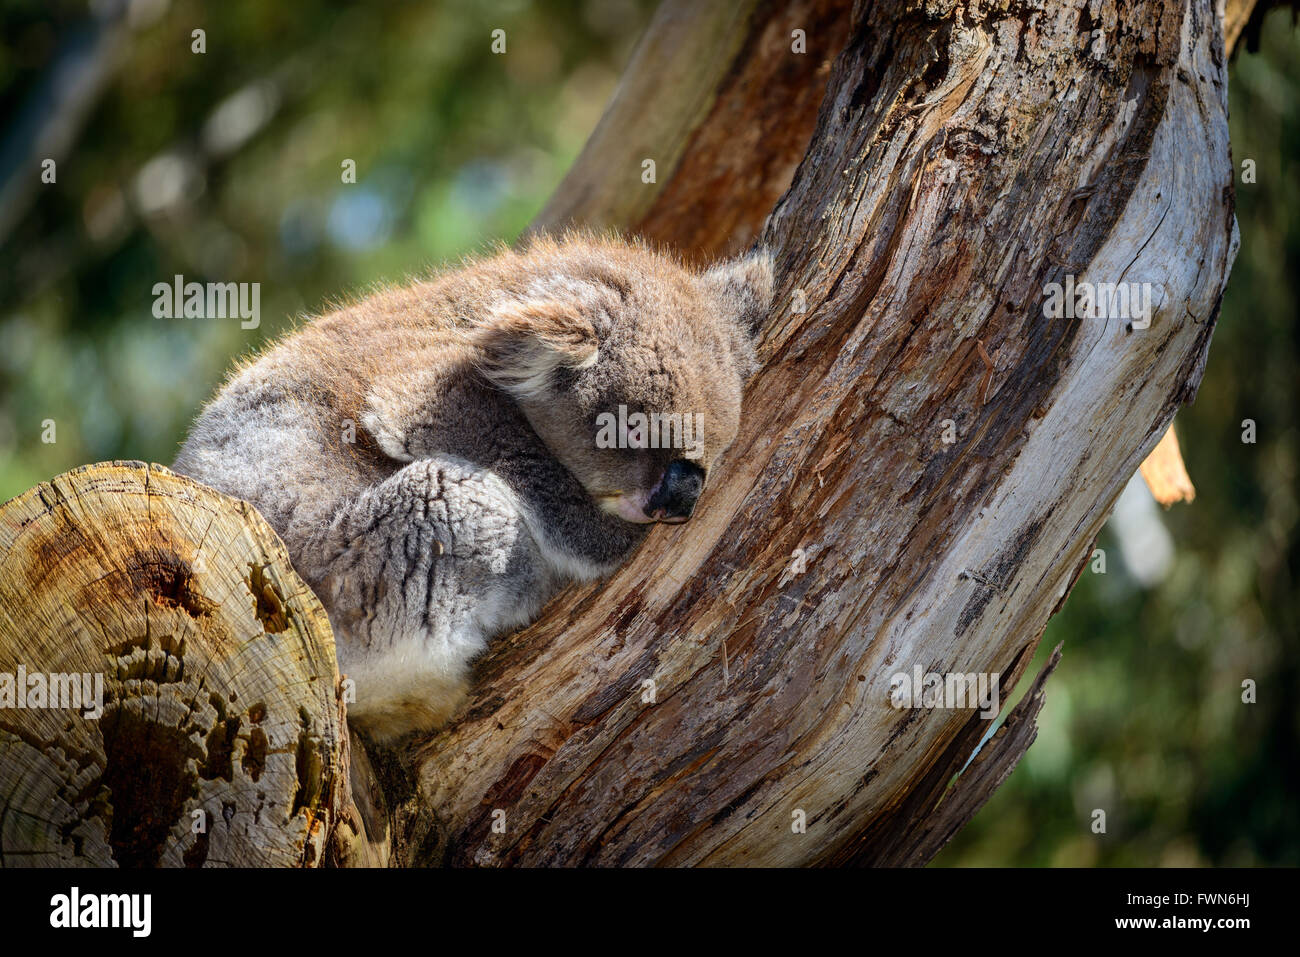 Australian koala bear sleeping on a tree in a wild environment - Stock Image